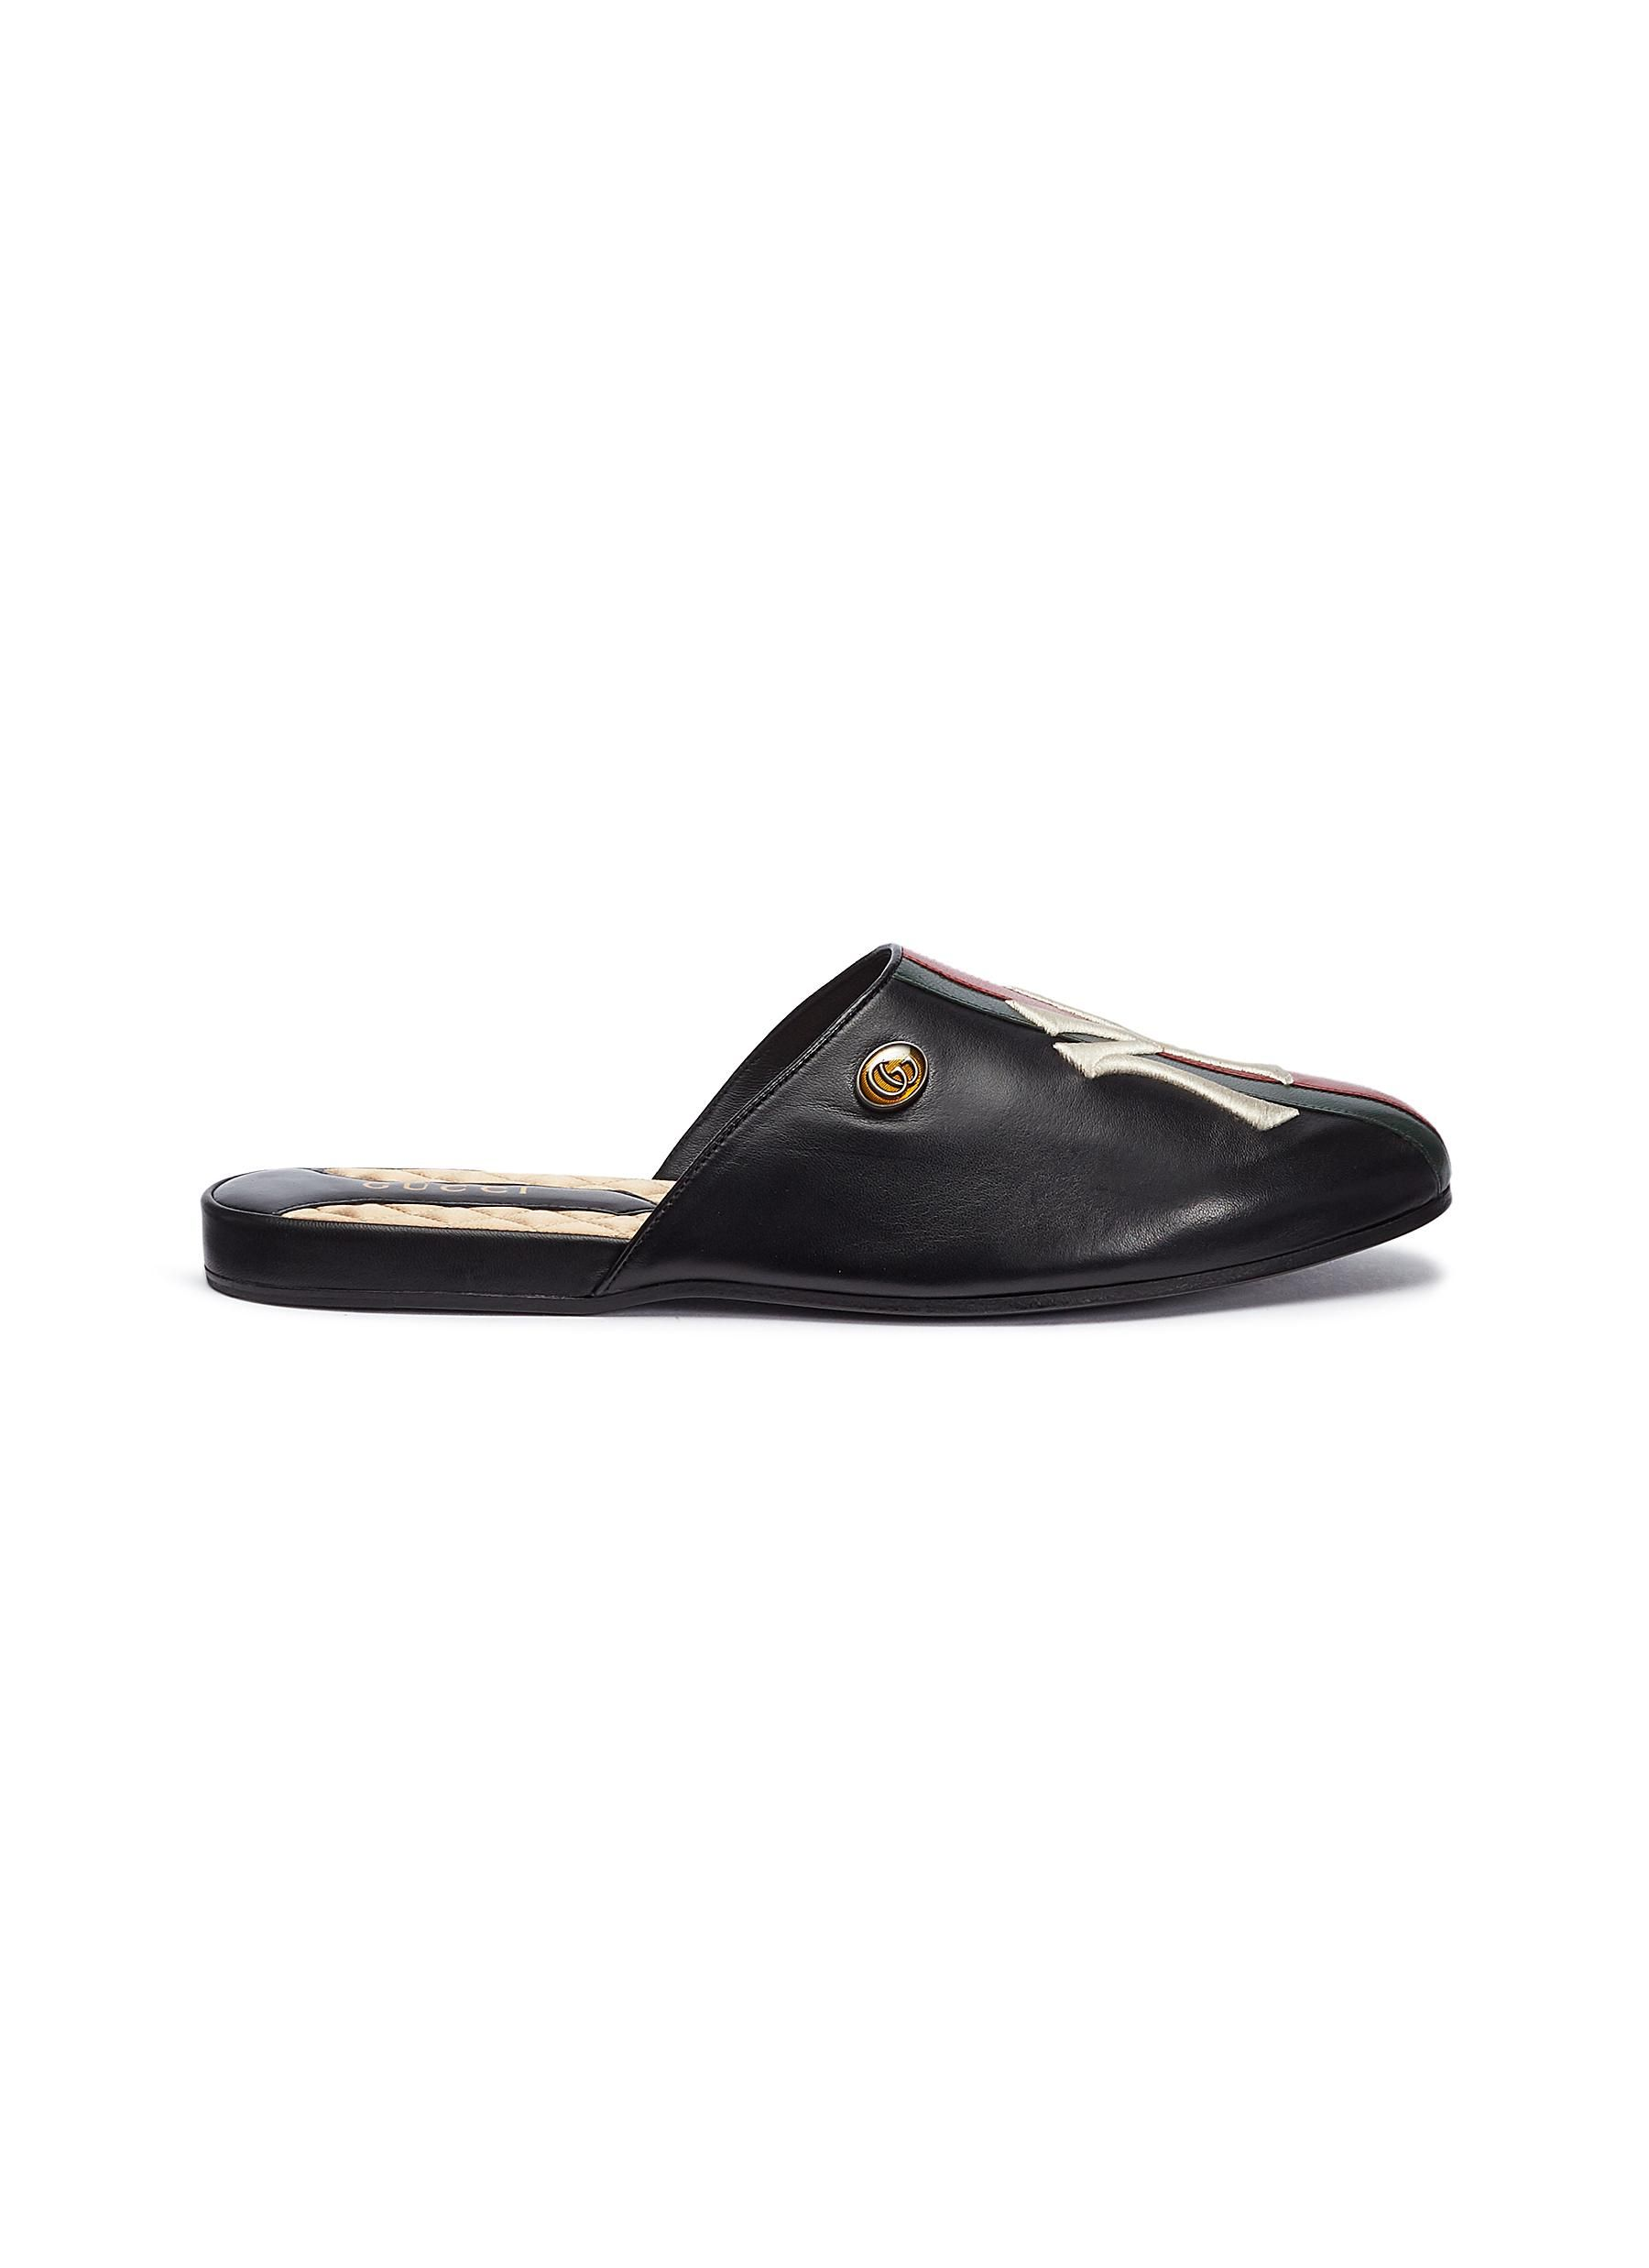 1ce258d99 GUCCI x Major League Baseball 'NY Yankees™' logo embroidered leather  slides. #